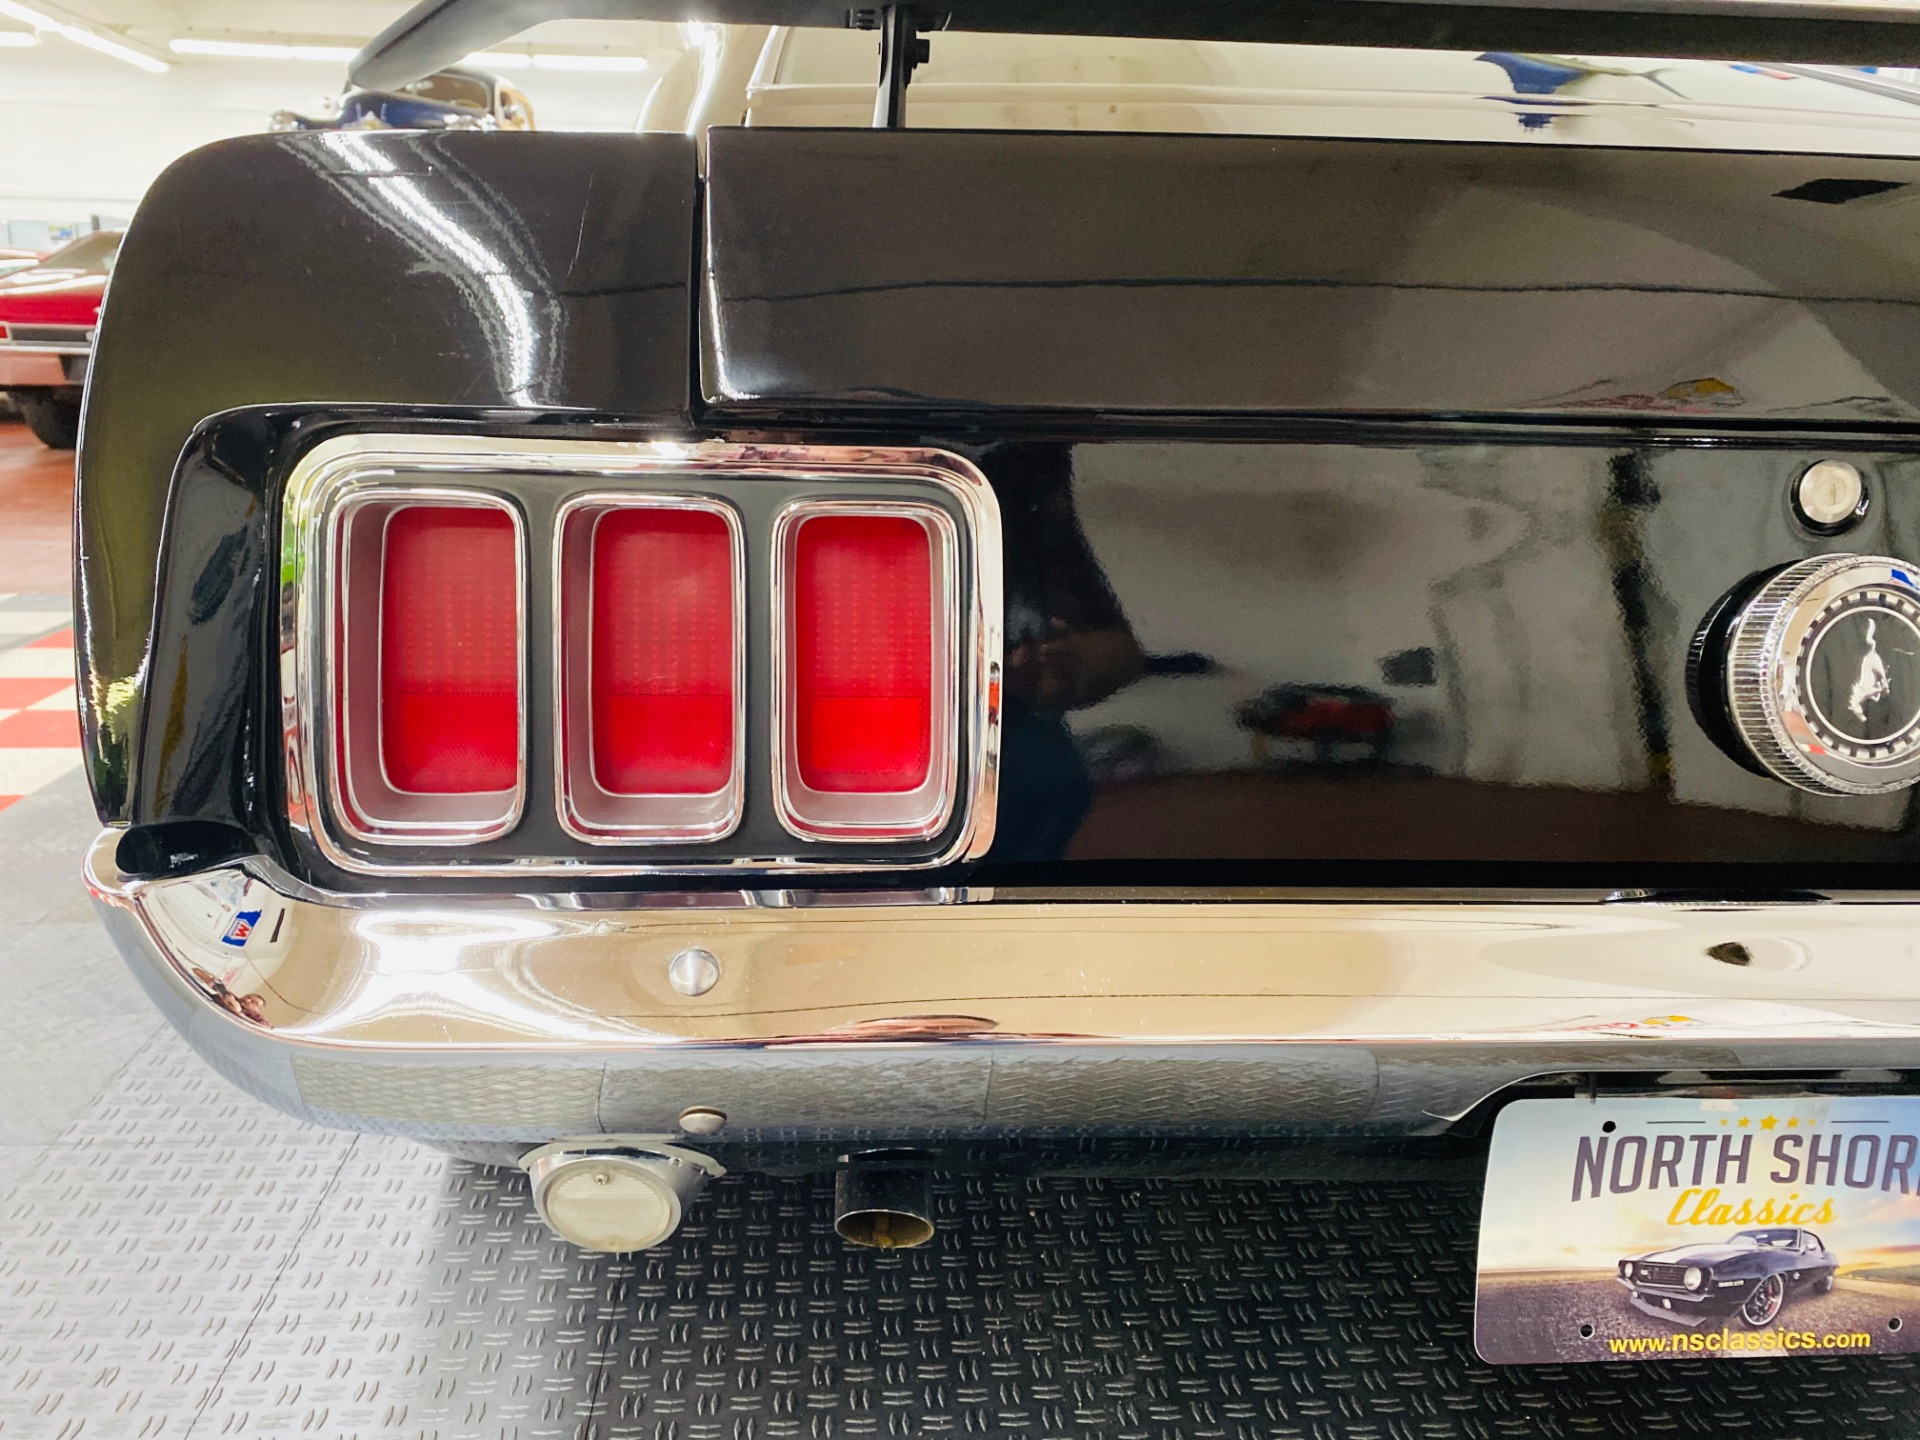 Used 1970 Ford Mustang - SPORTSROOF FASTBACK - 302 V8 ENGINE - AUTO TRANS - | Mundelein, IL